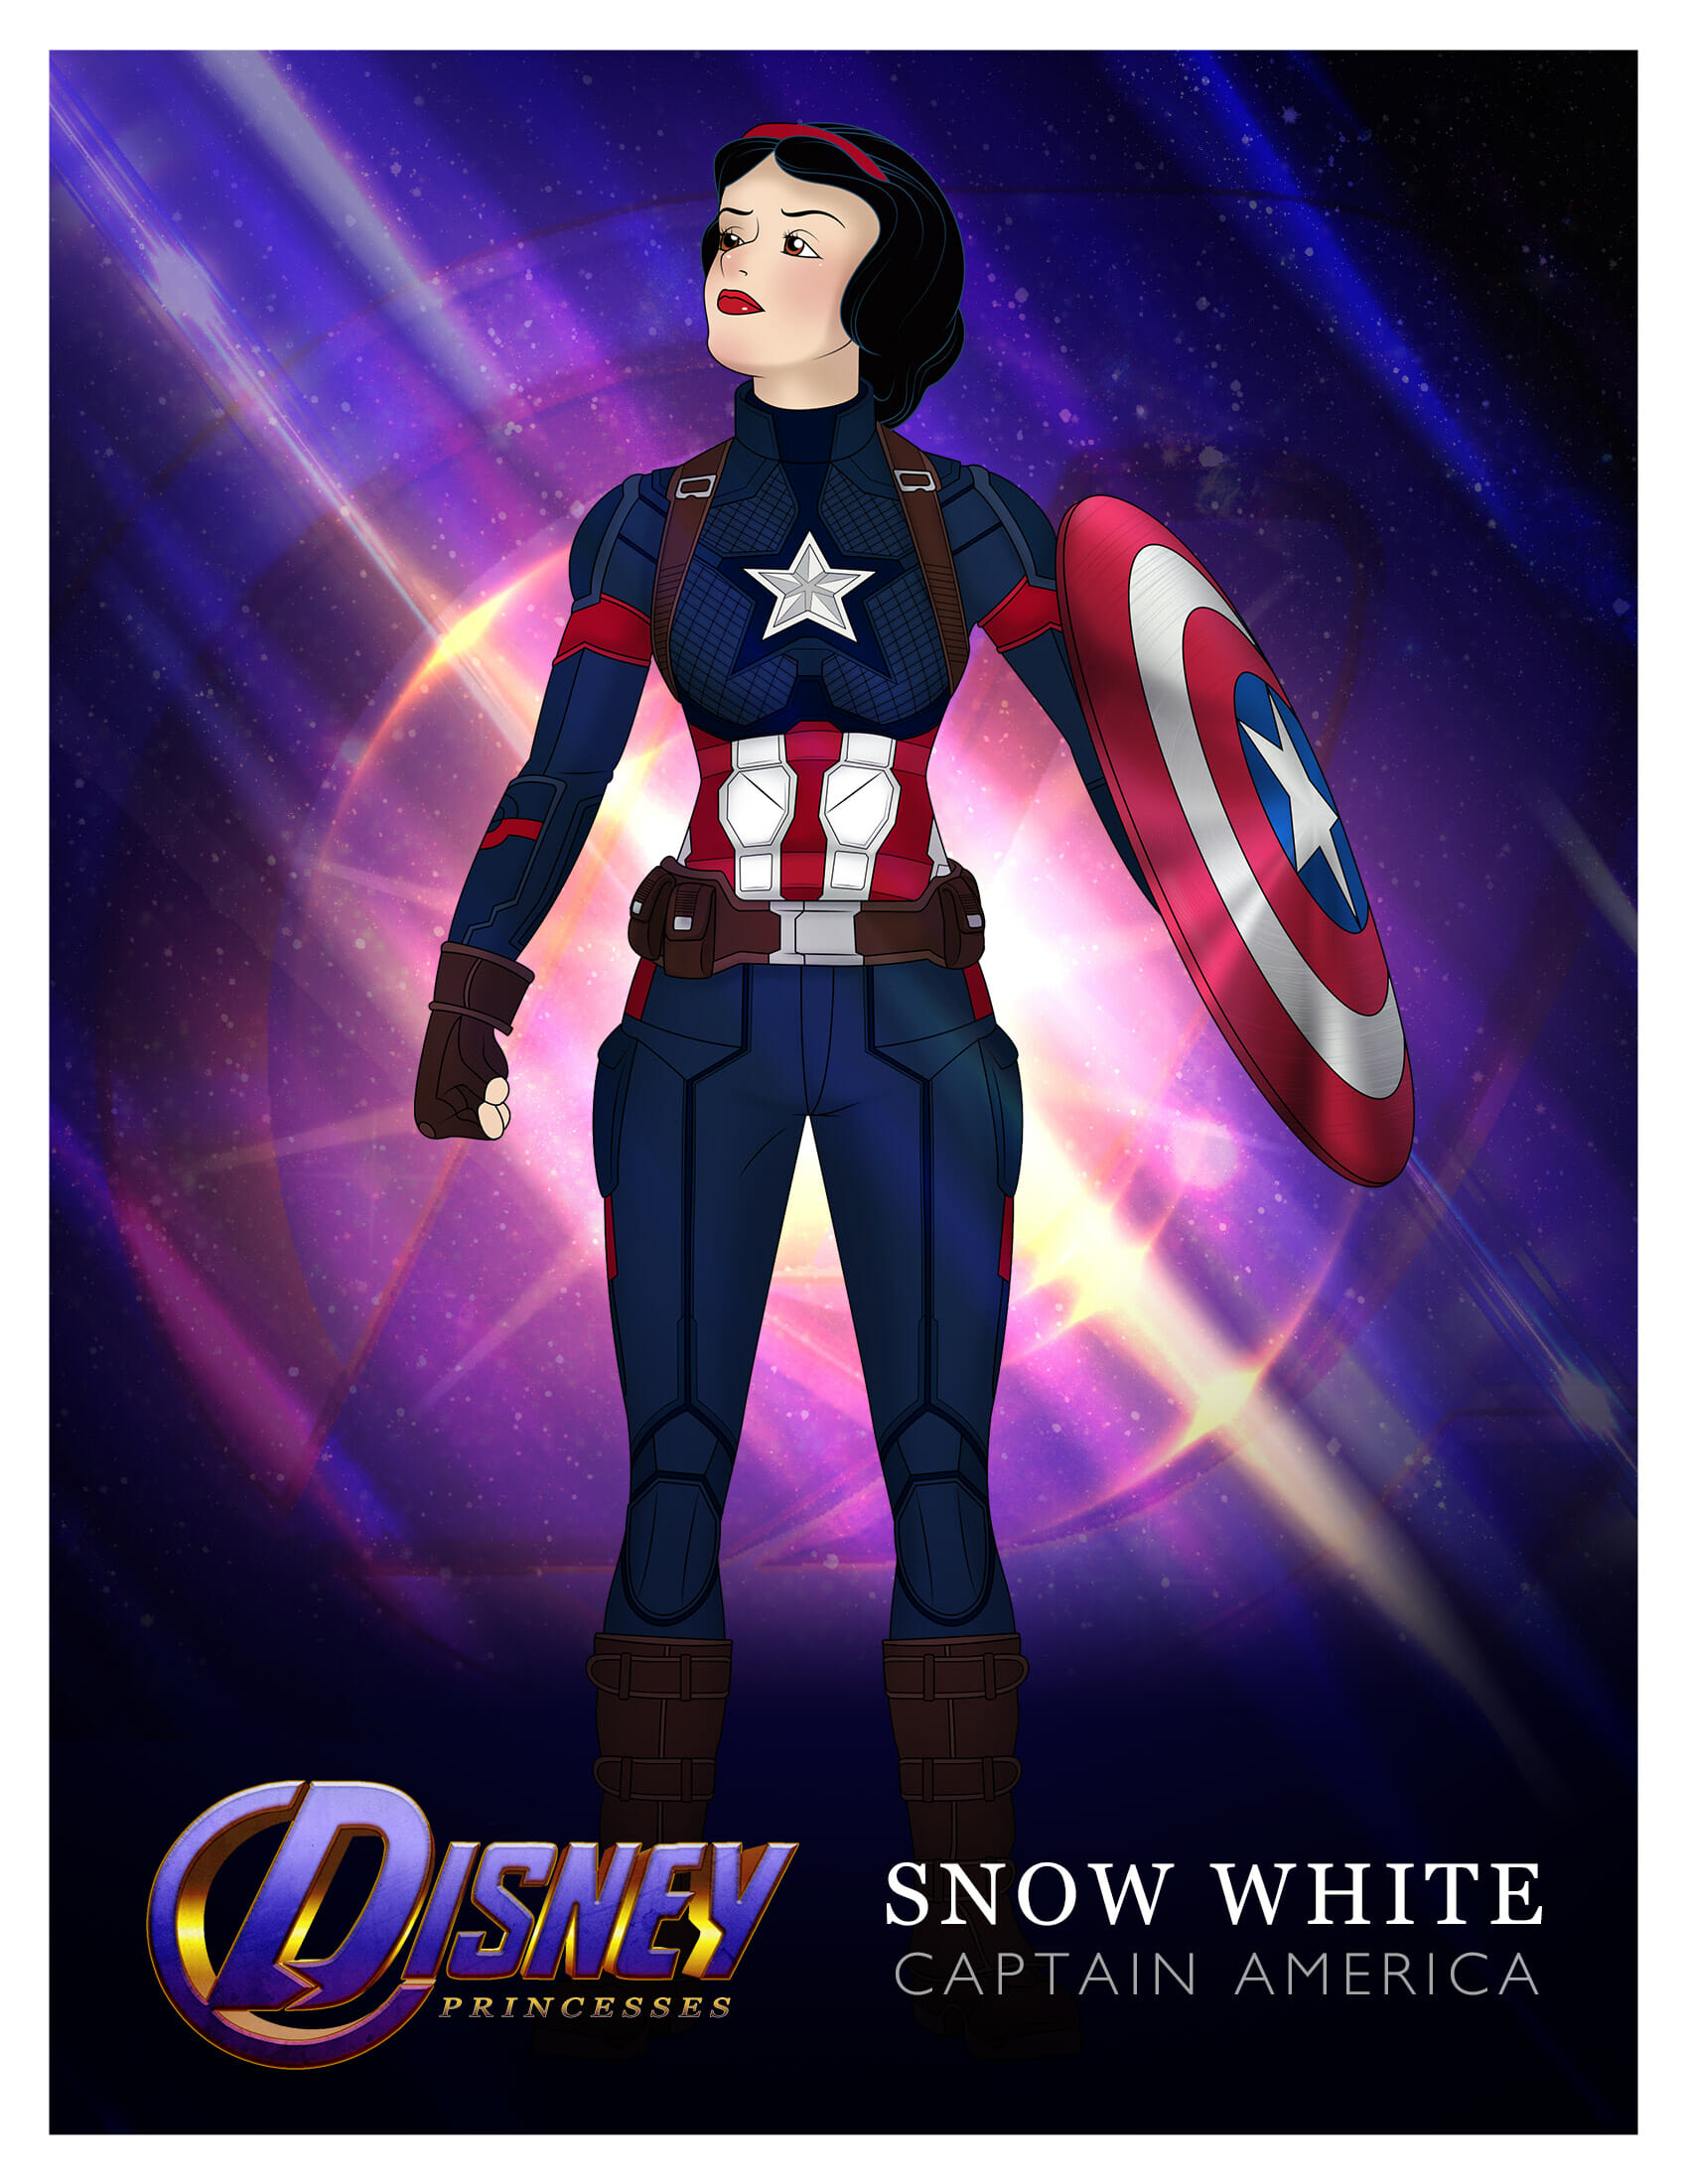 Princess Snow White as Captain America